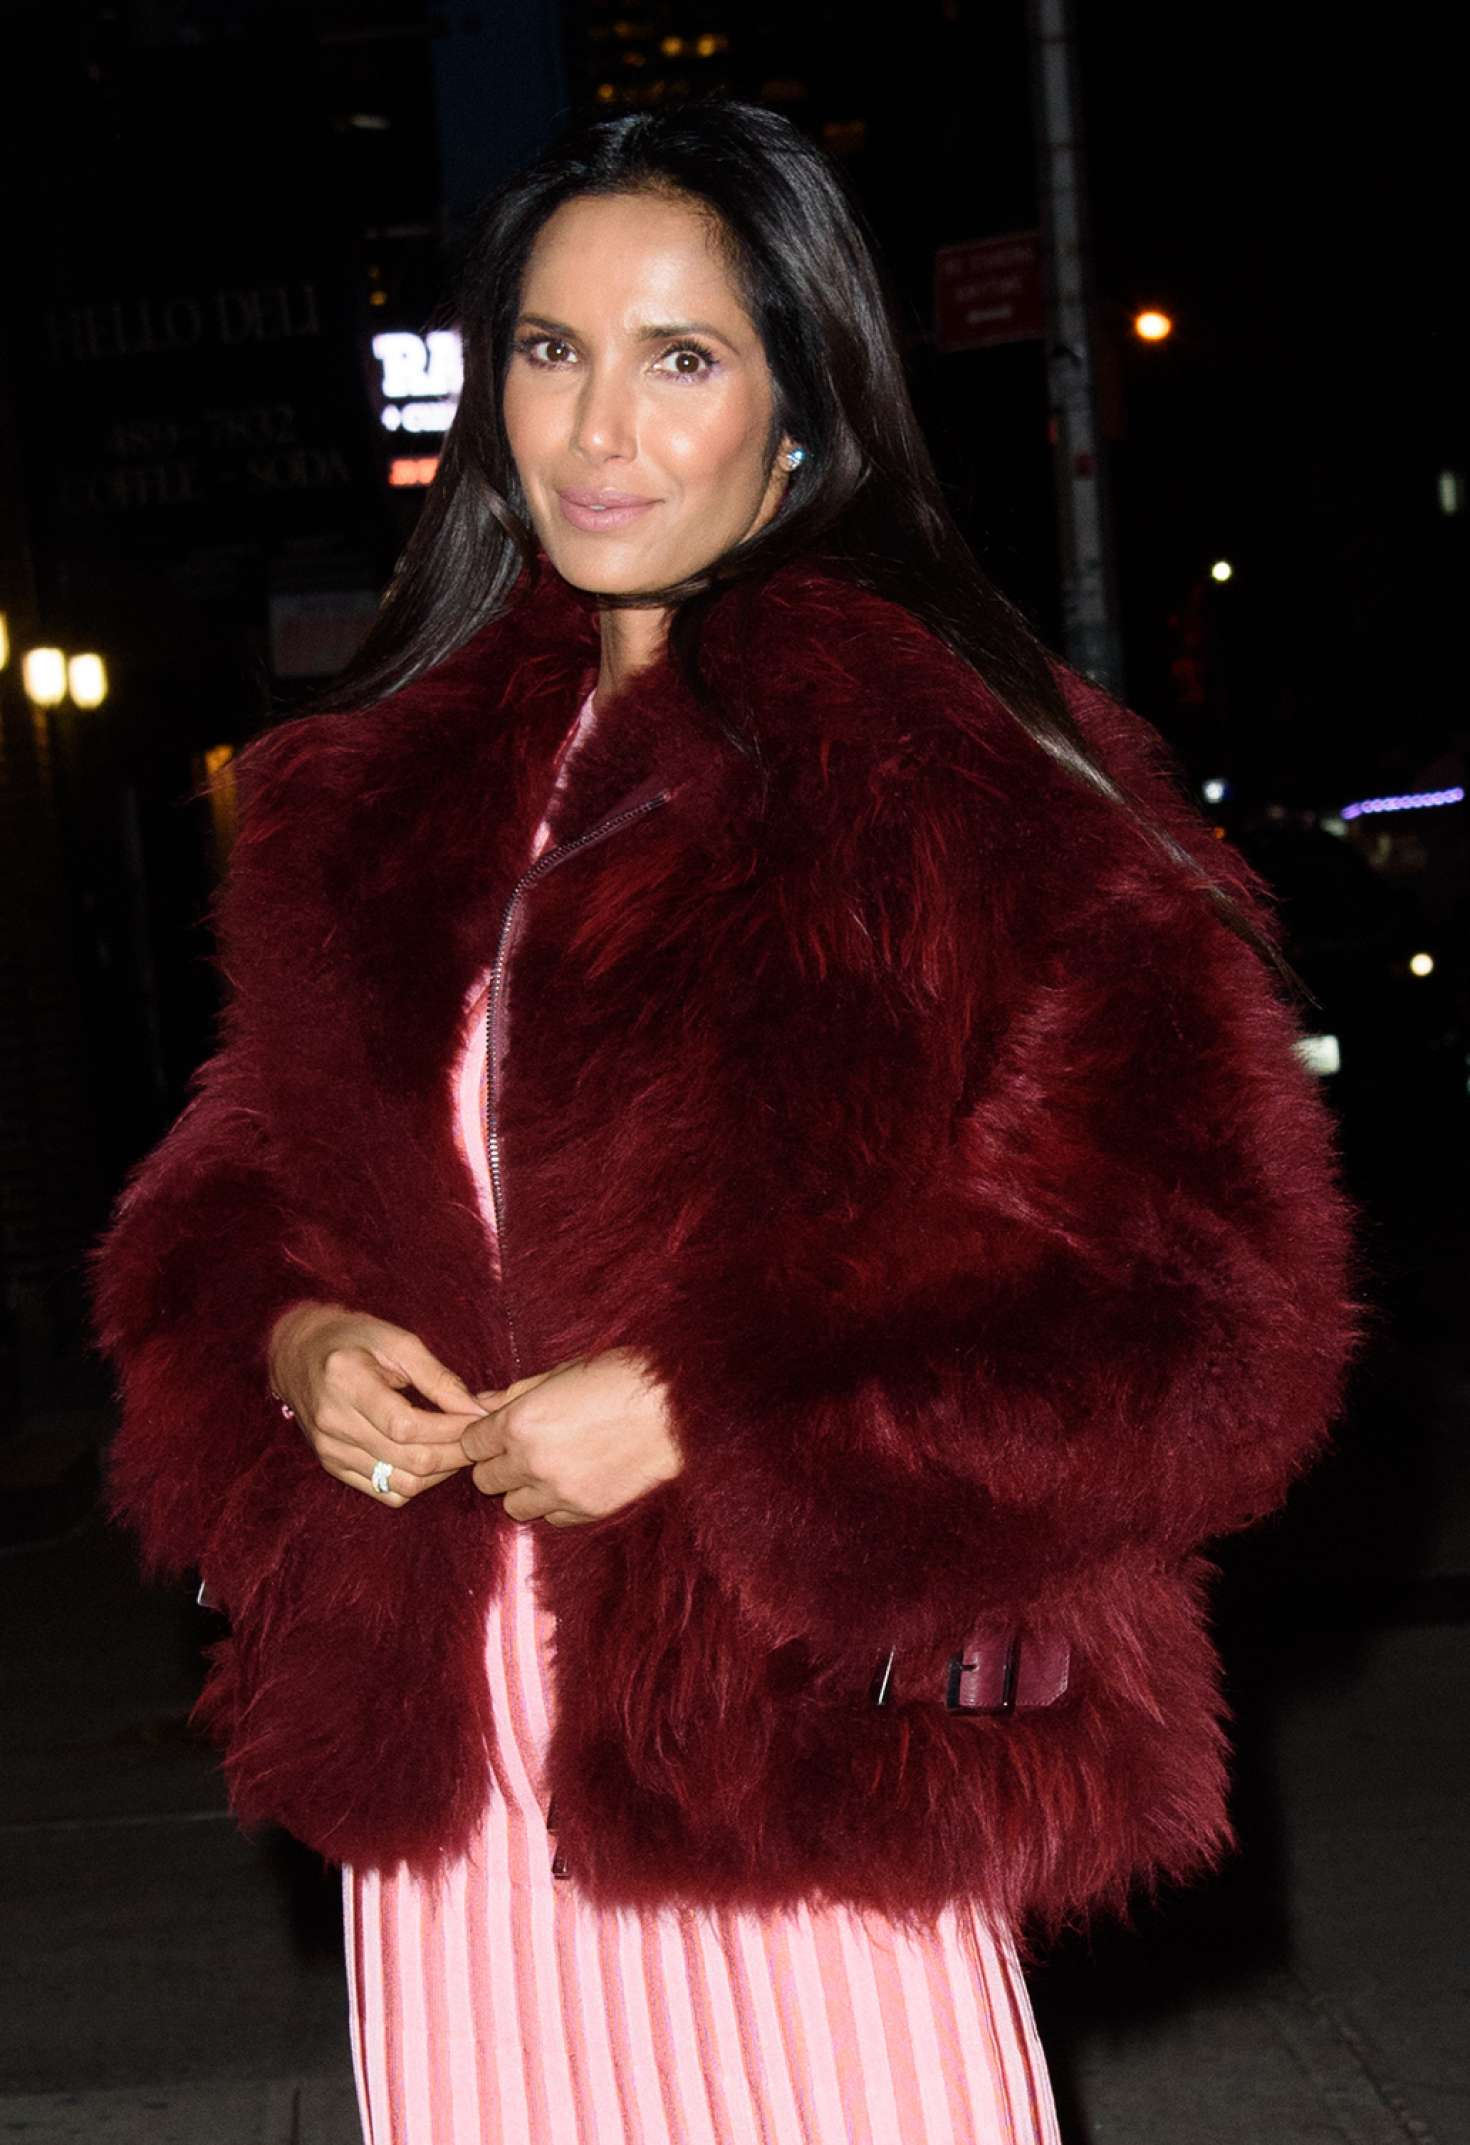 Padma Lakshmi - Arrives to 'Late Show with Stephen Colbert Show' in NY